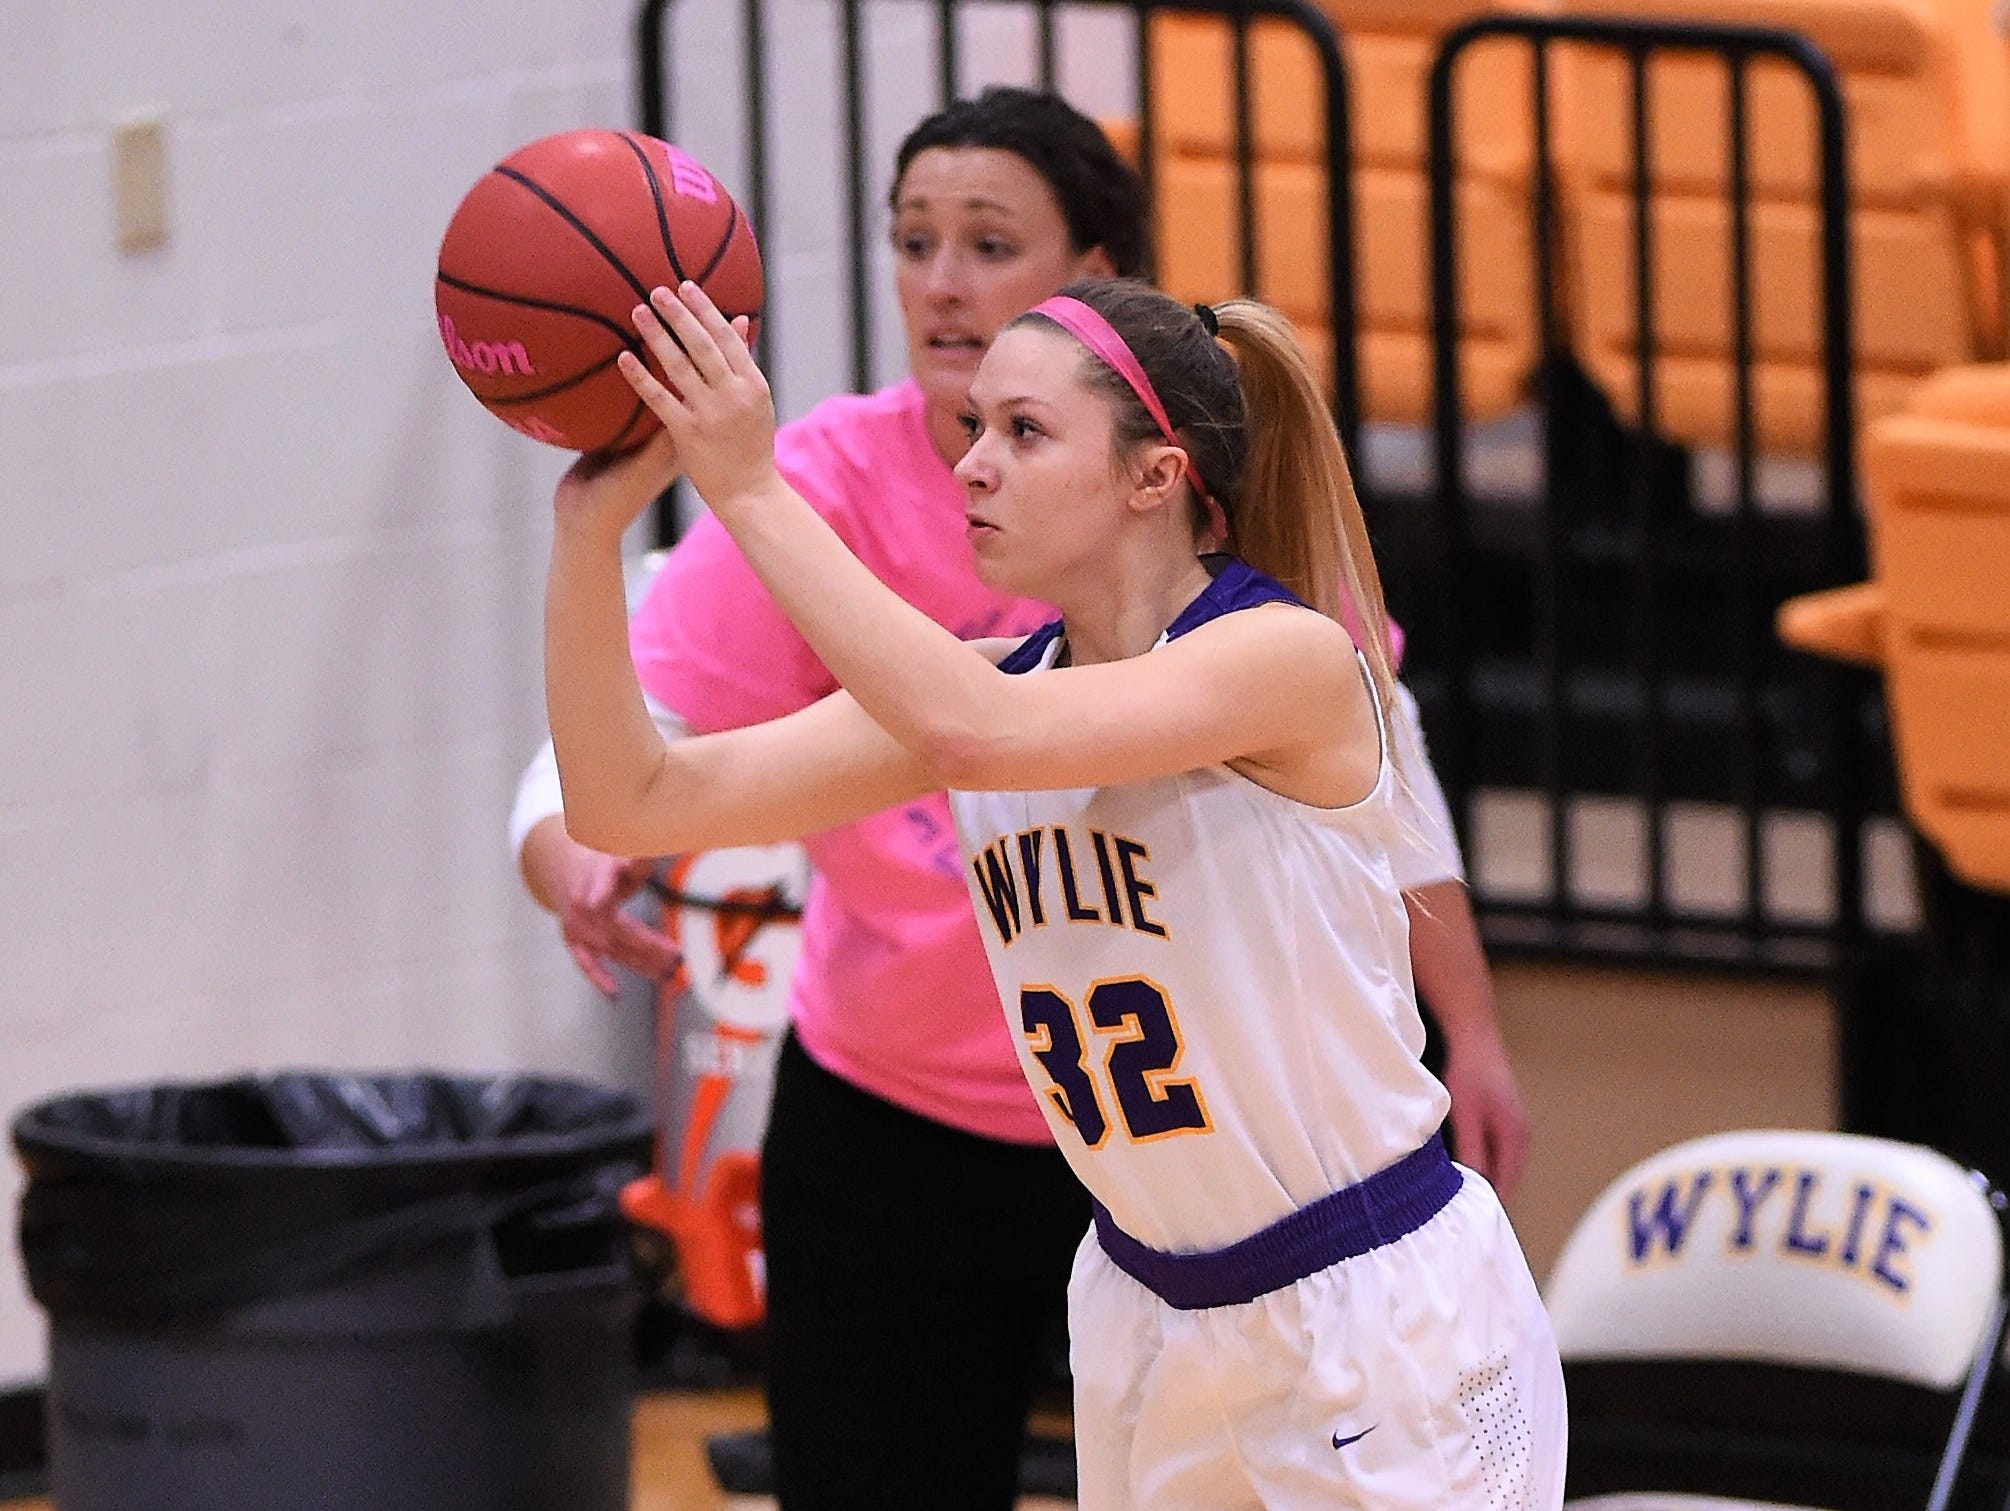 Wylie guard Skylar Williams (32) takes a 3-point shot during Tuesday night's game against Merkel.